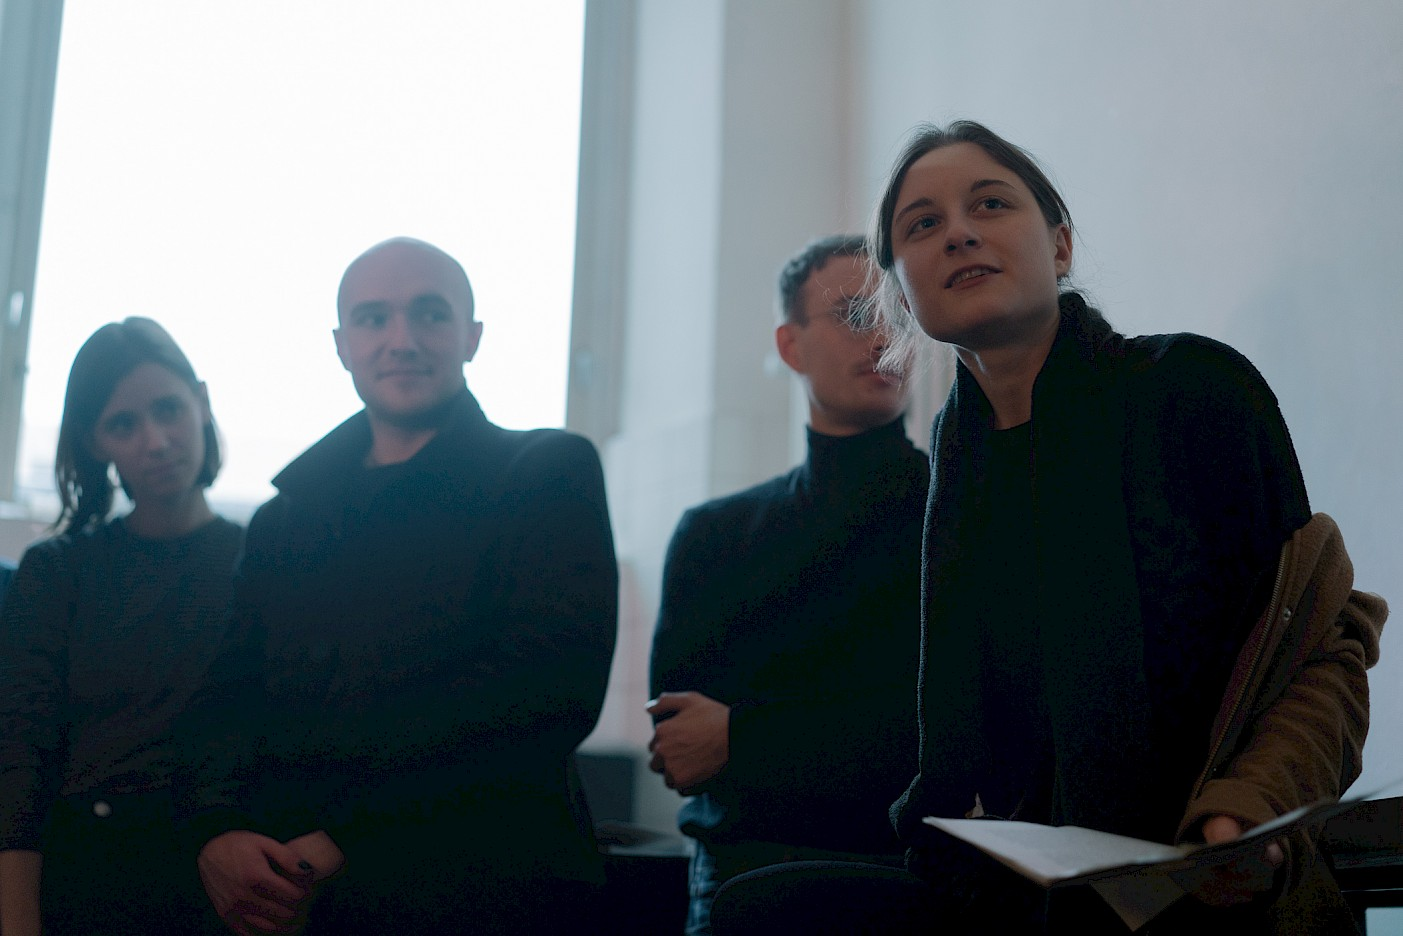 Buchpräsentation After Facts, Curatorial Studies, Filmküche, Rundgang 2018, Foto: Béla Feldberg